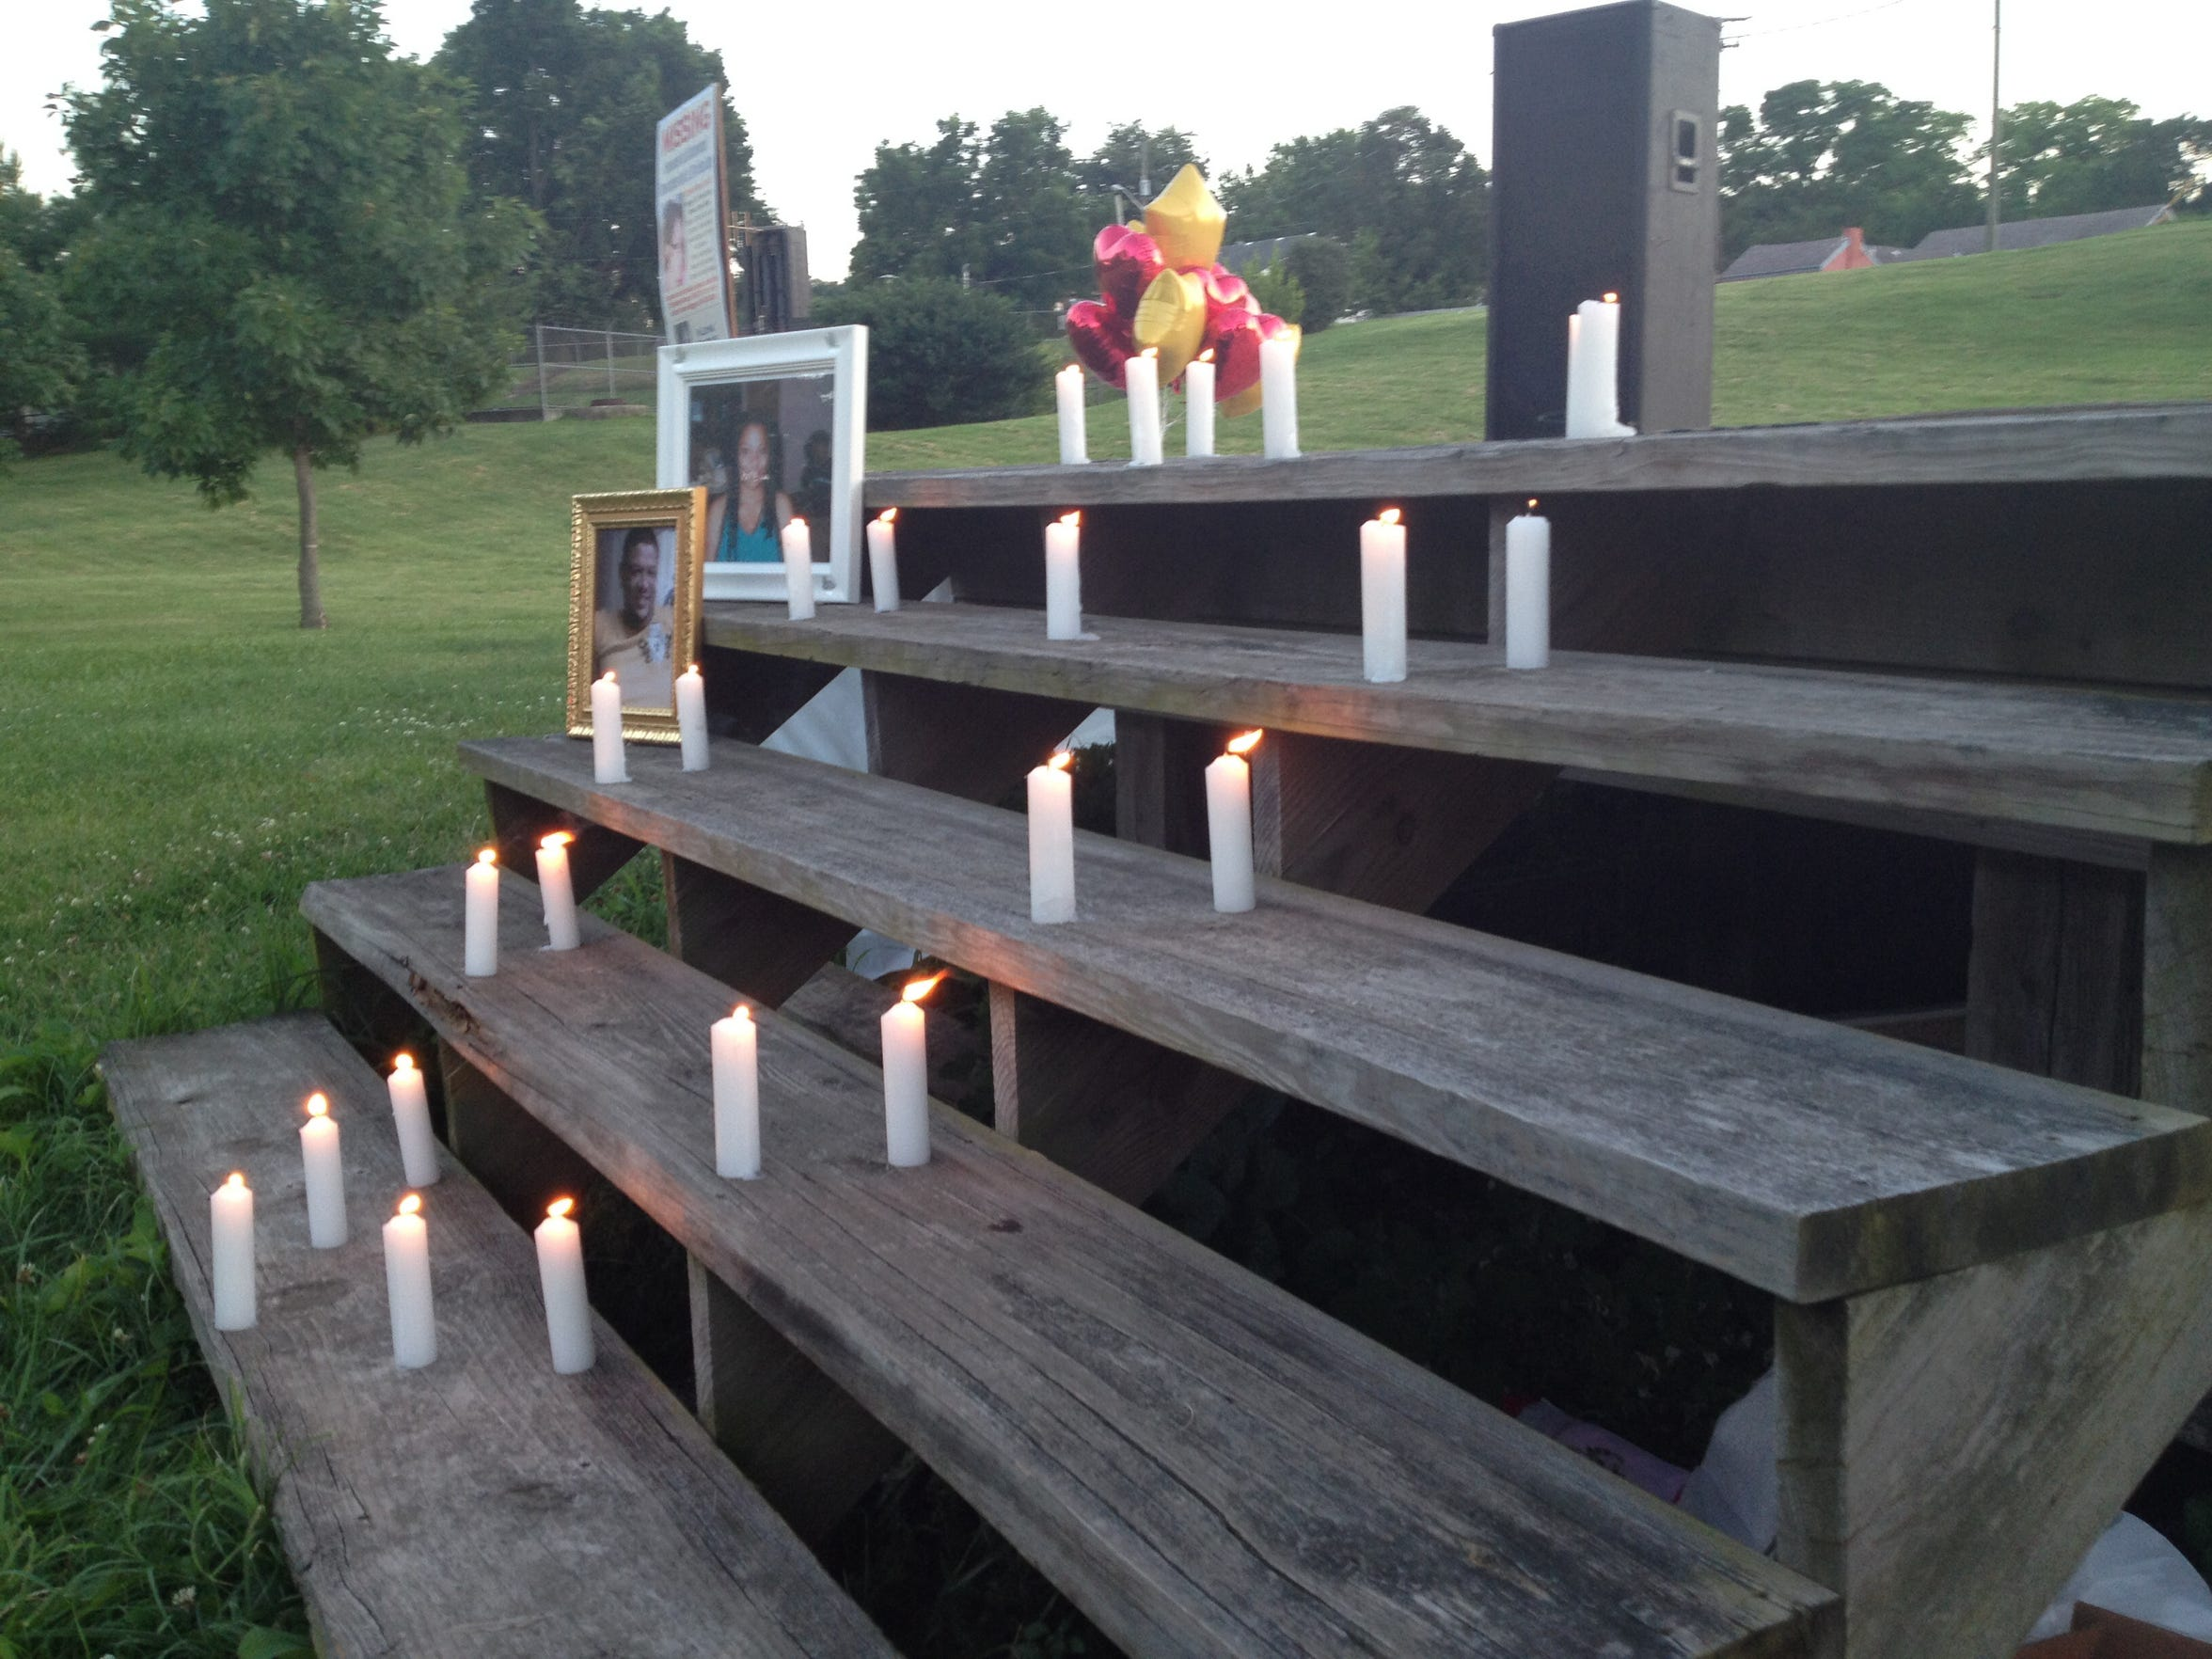 A picture of Tameka Lynch and several candles were placed to represent the unanswered questions still revolving around her death at a 2014 vigil.